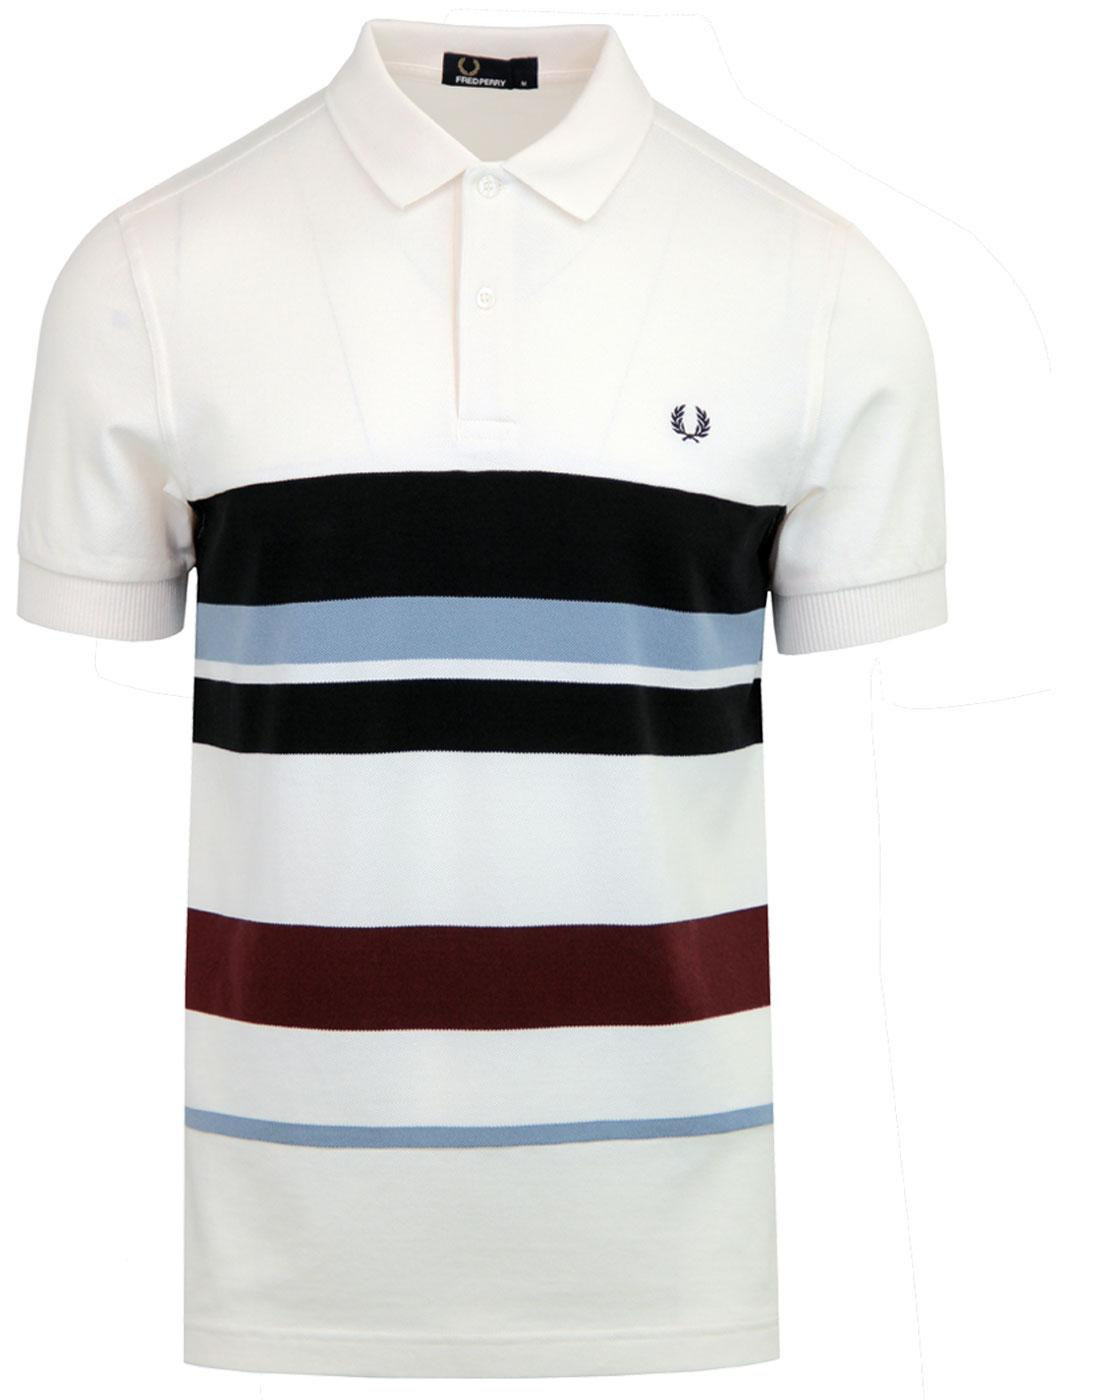 FRED PERRY Men's Mod Multi Stripe Pique Polo